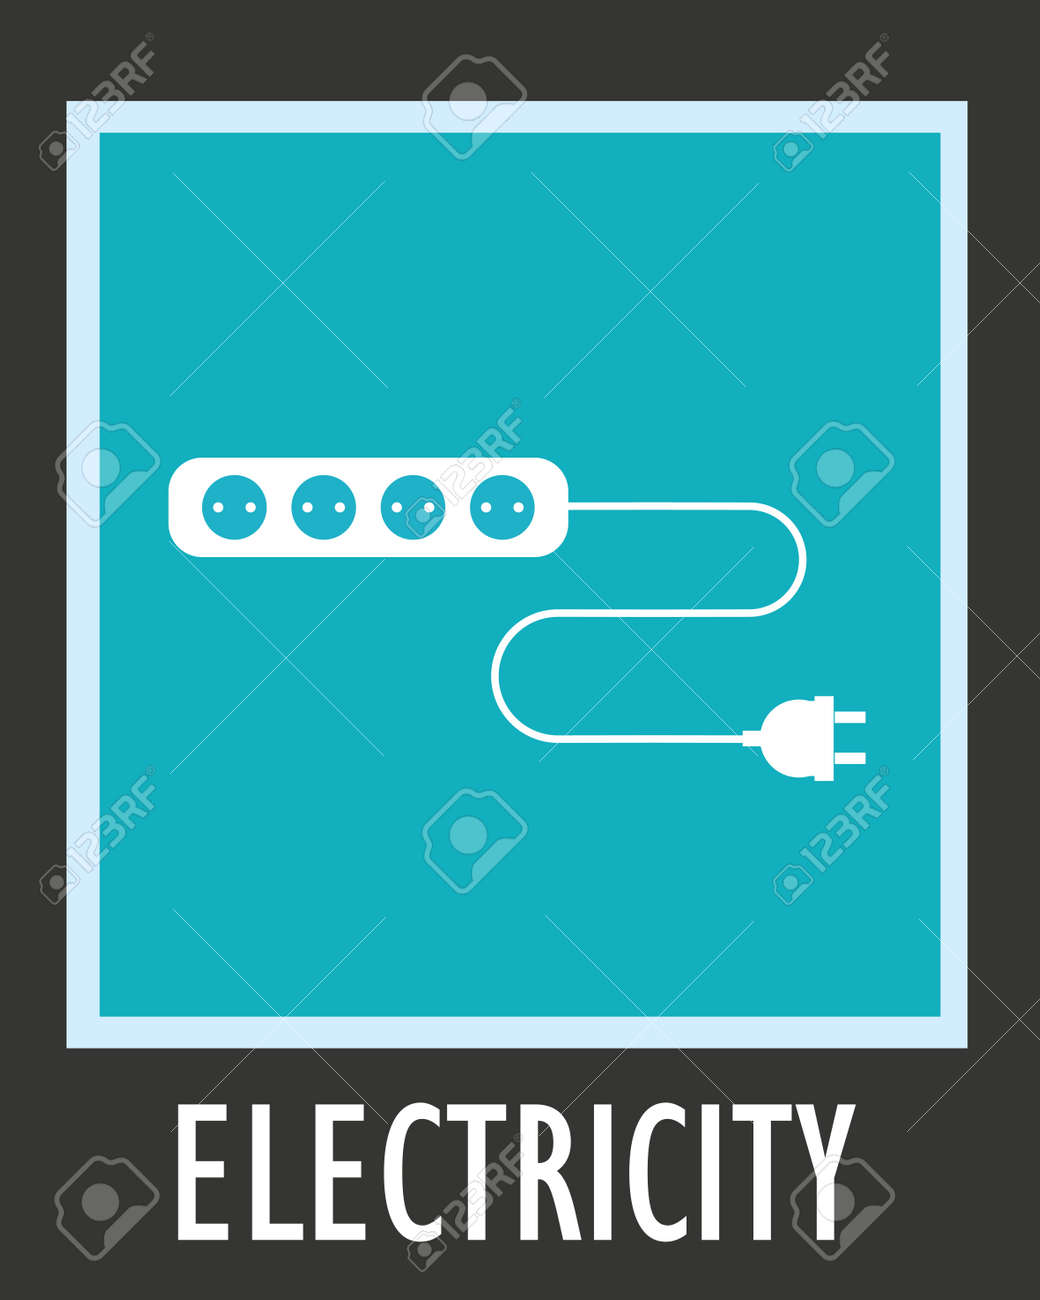 Wire, Socket And Electric Plug Vector Design. Royalty Free Cliparts ...